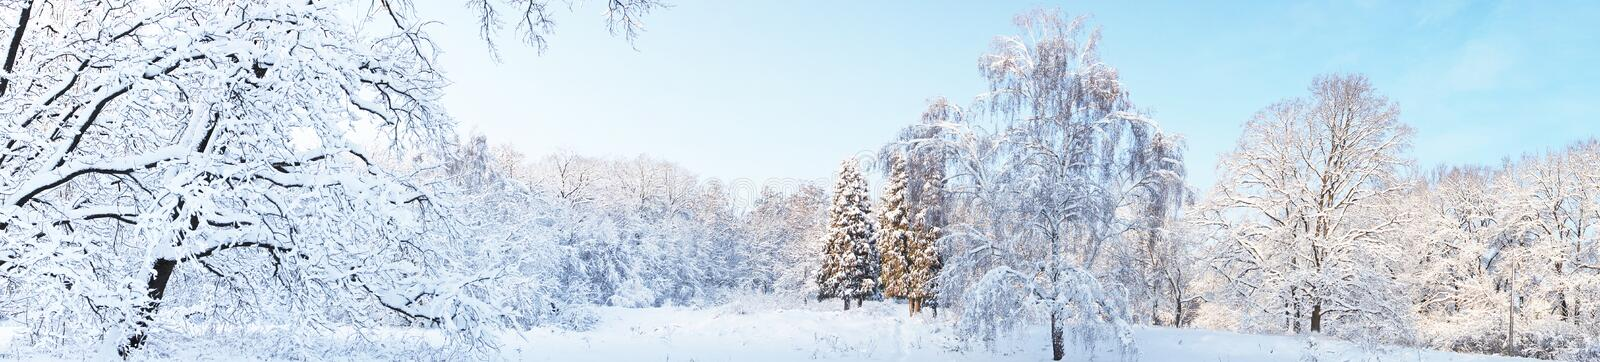 Download Winter forest stock image. Image of country, december - 23063037